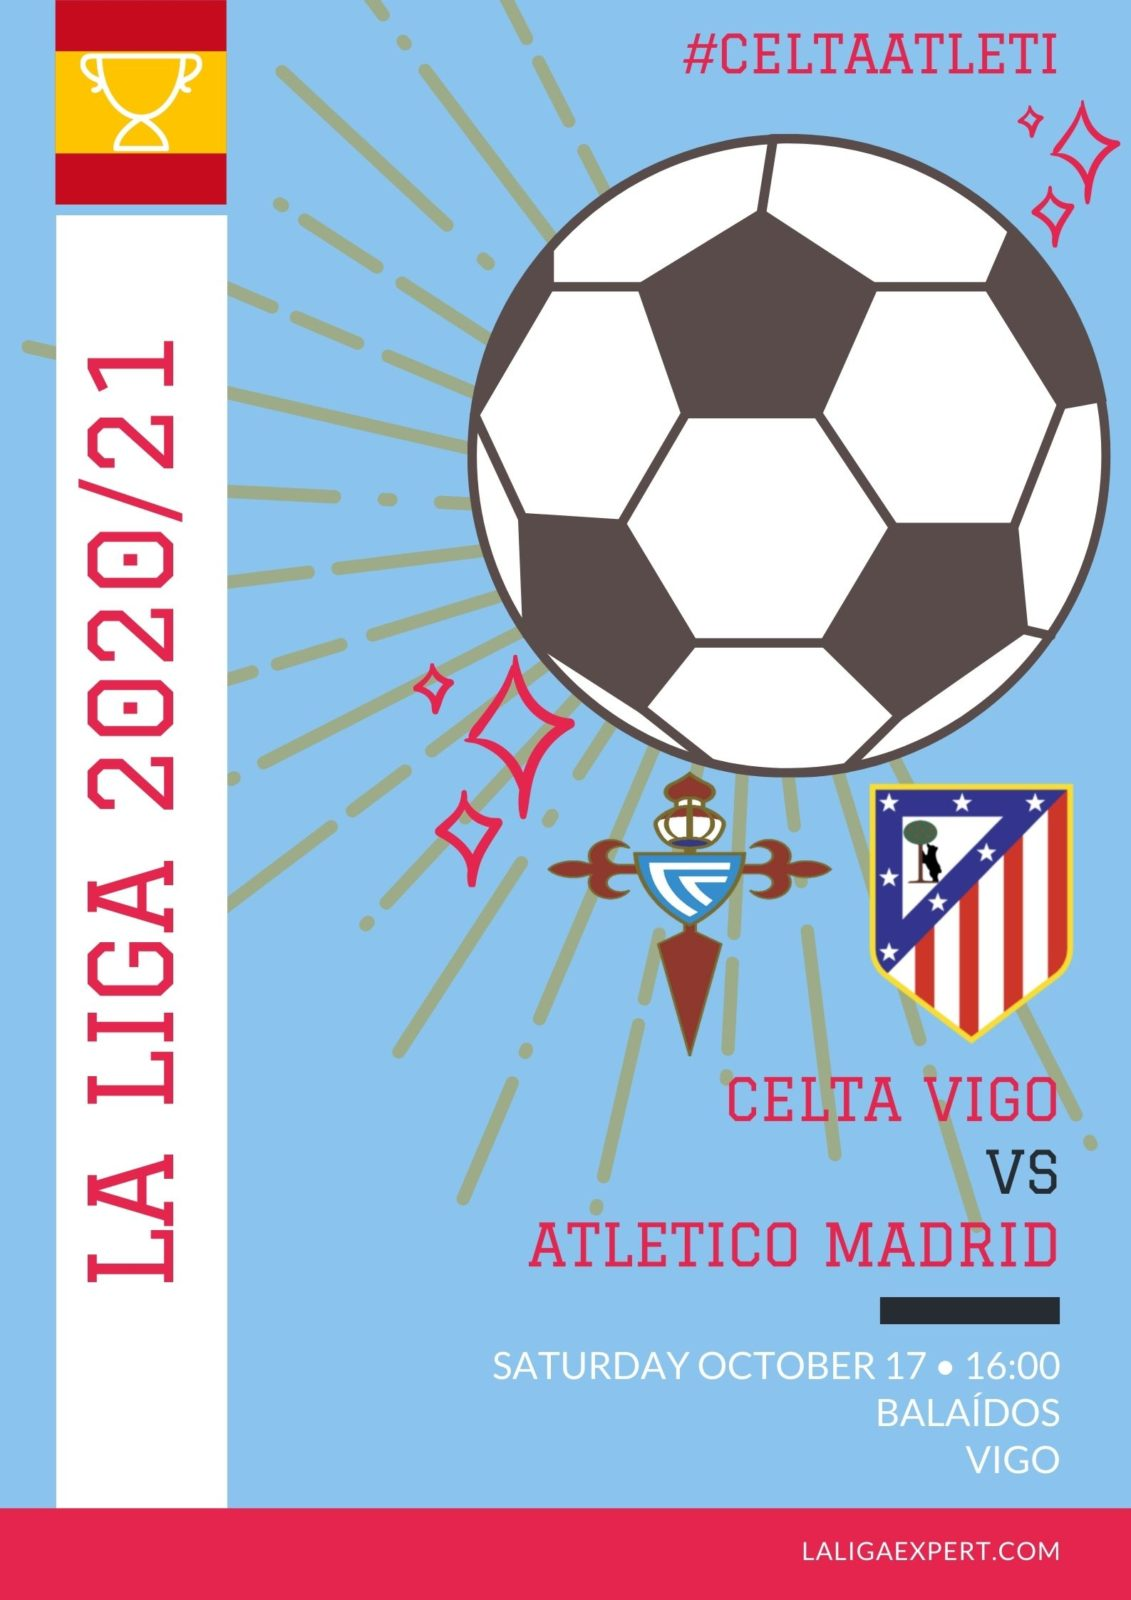 Celta vigo vs atletico madrid betting expert predictions do football fans bet on who is going to win the game